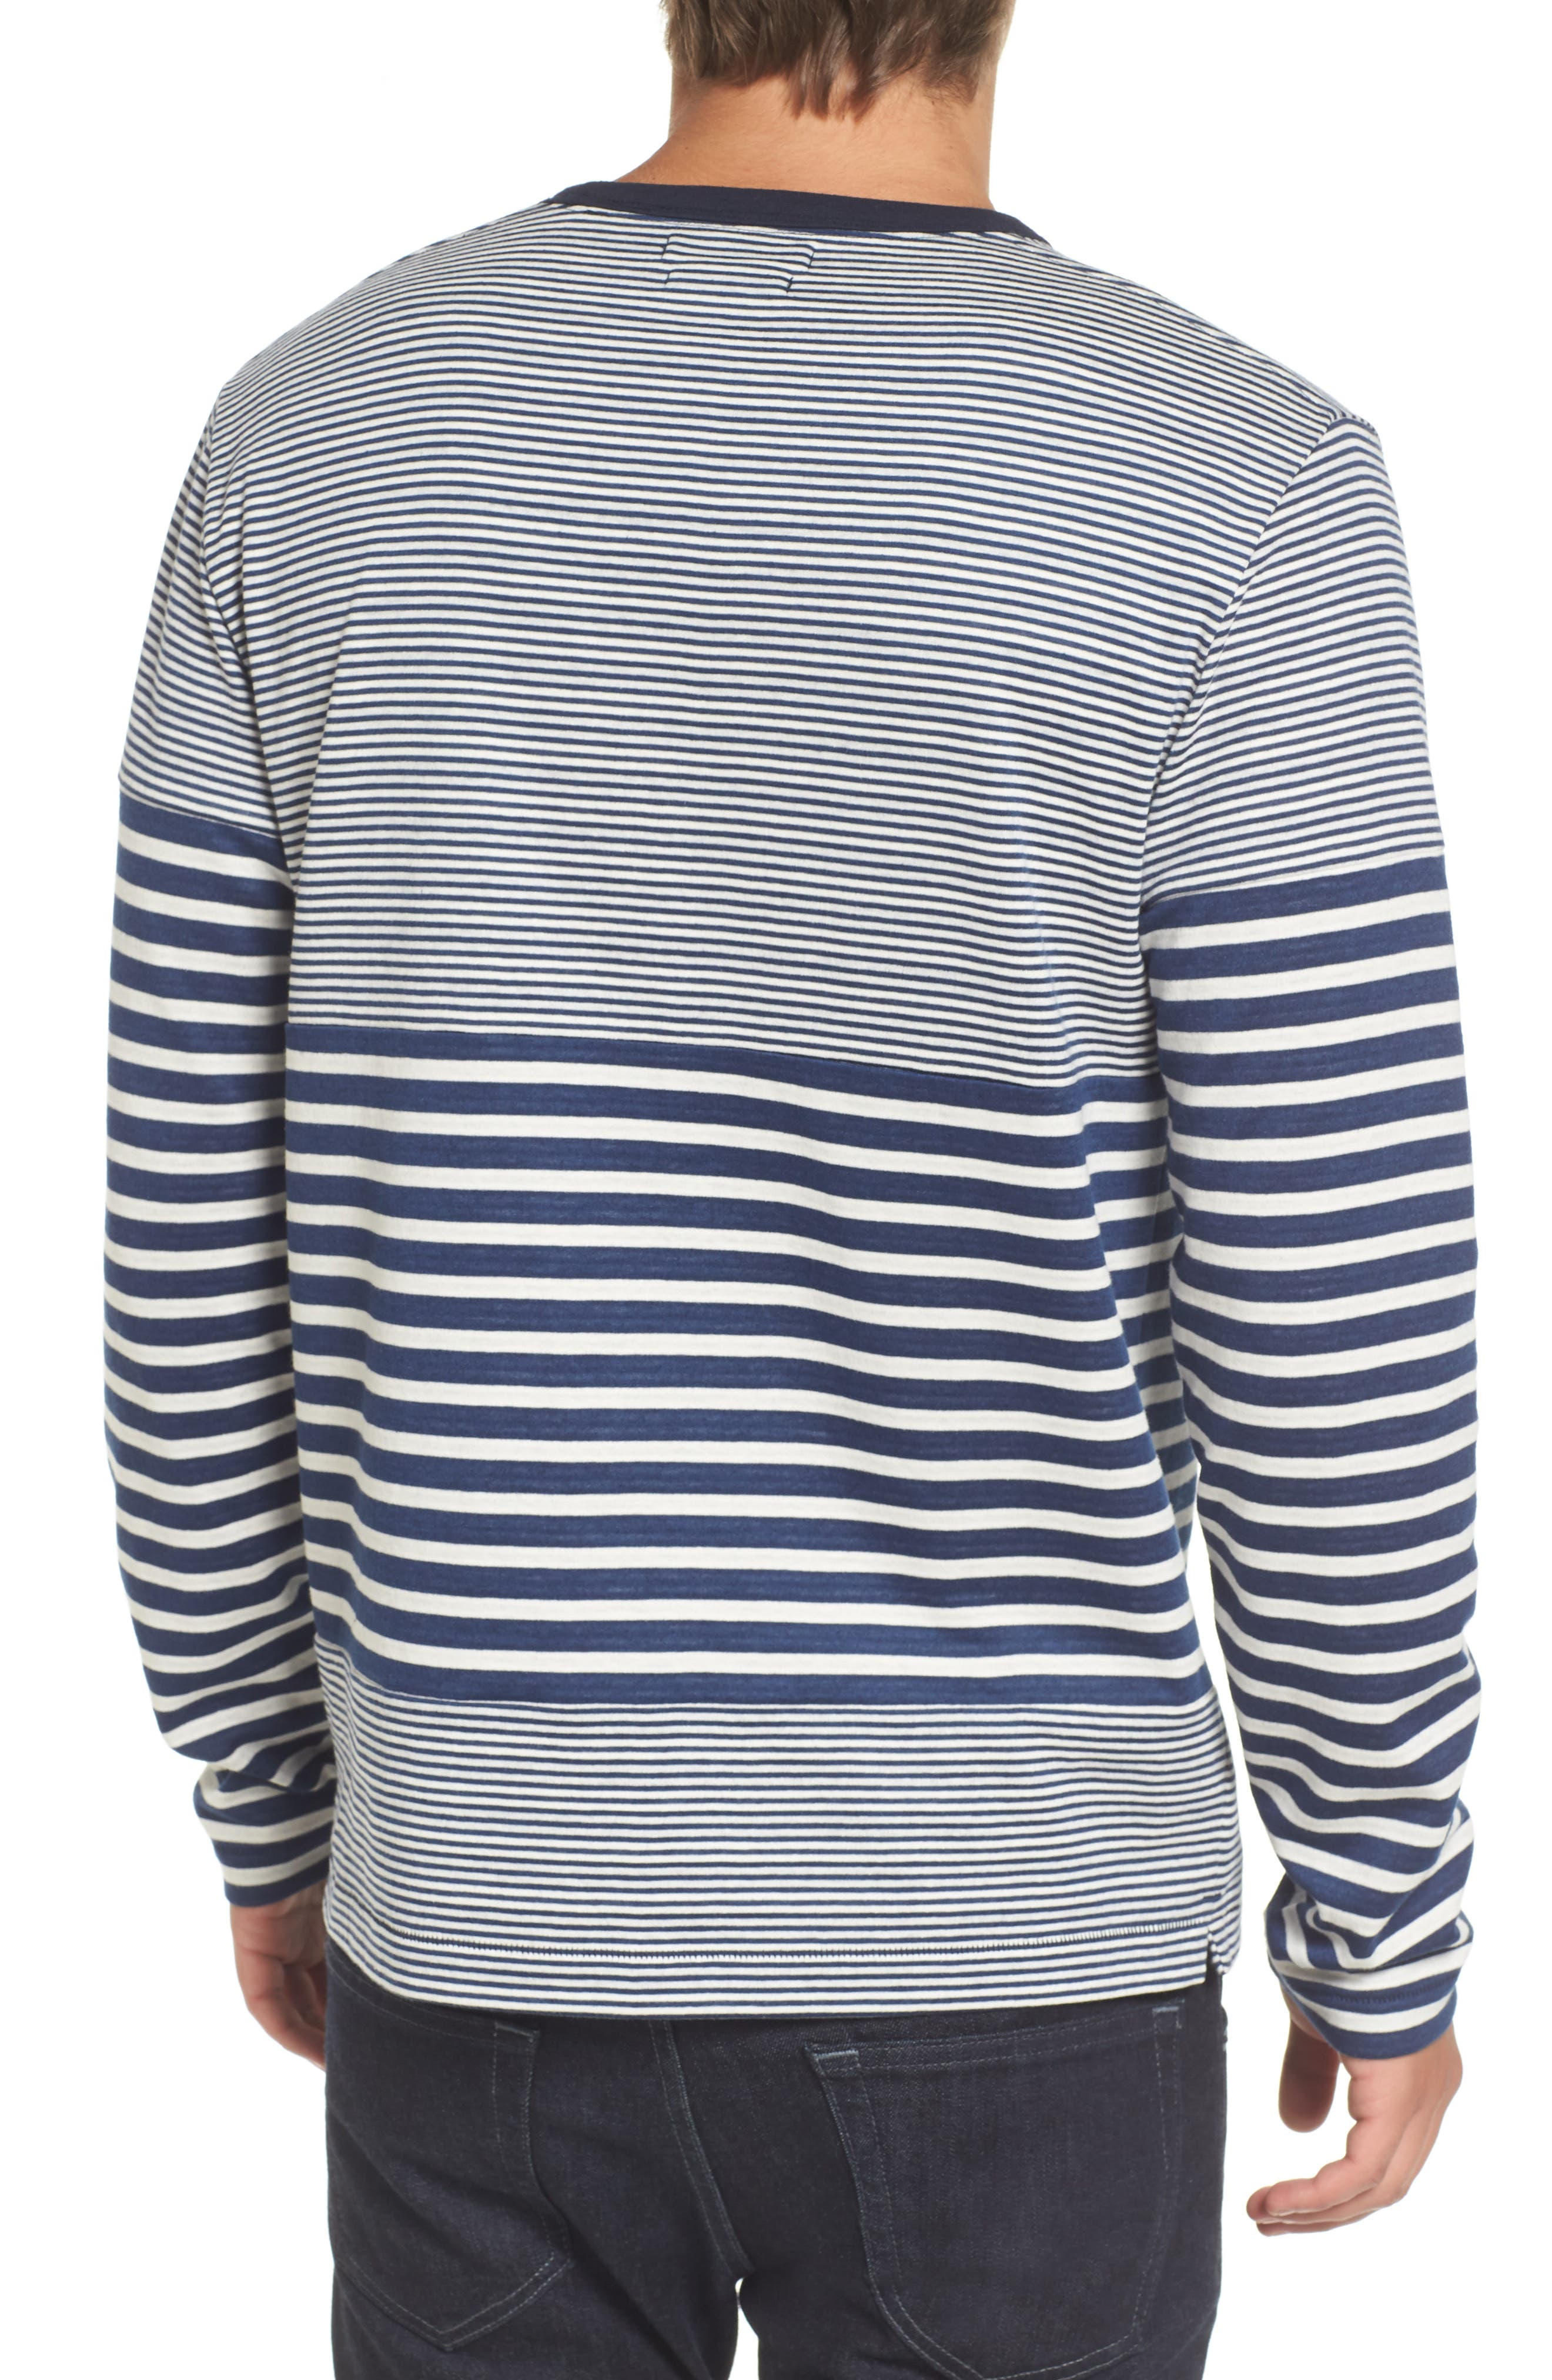 Alternate Image 2  - French Connection Stripe Long Sleeve T-Shirt